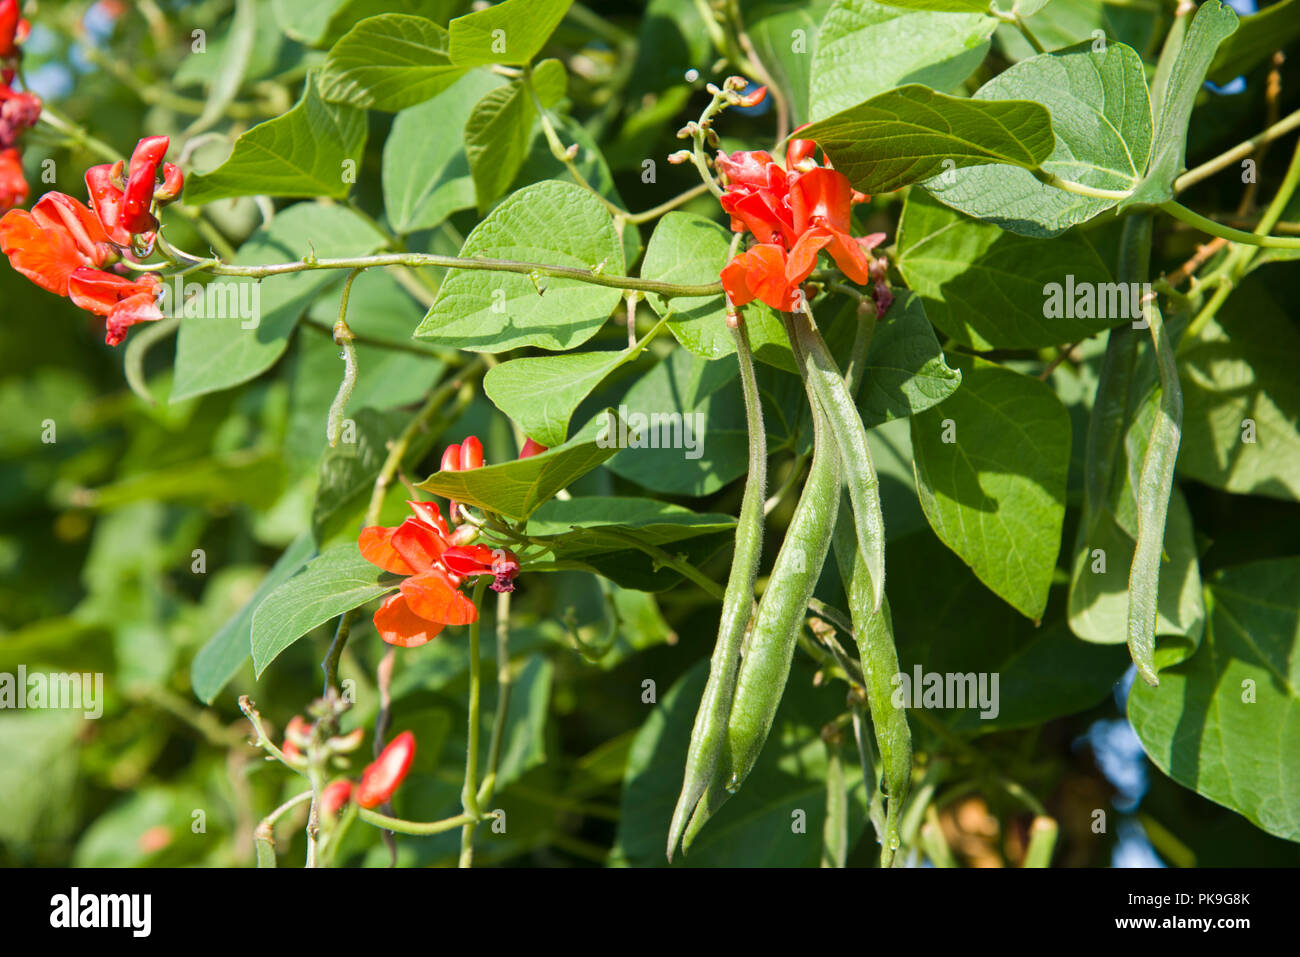 Runner beans, Enorma, growing on the plant - Stock Image